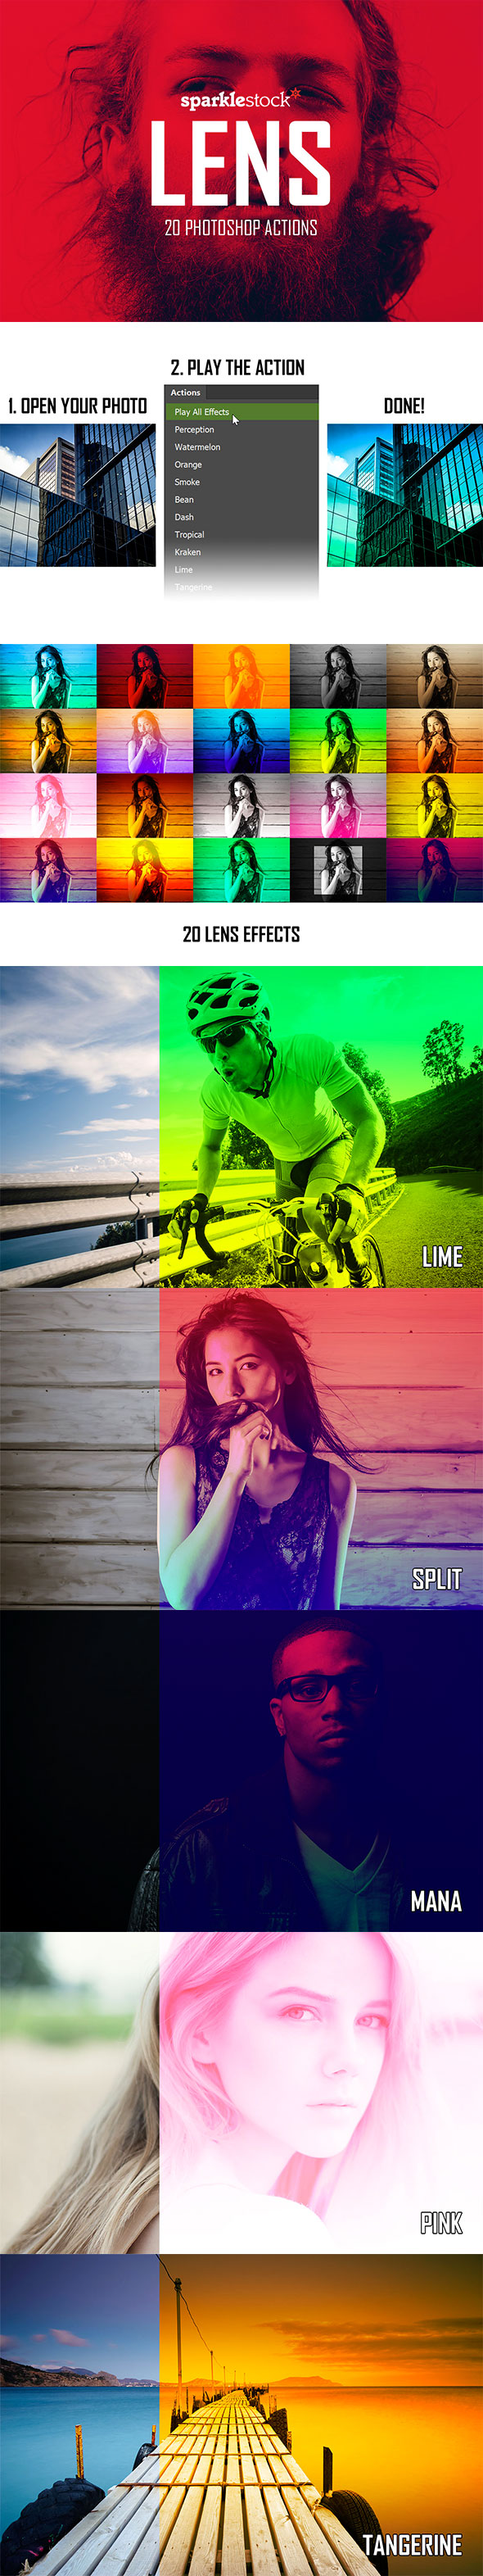 Lens - 20 Vibrant Effects - Photo Effects Actions